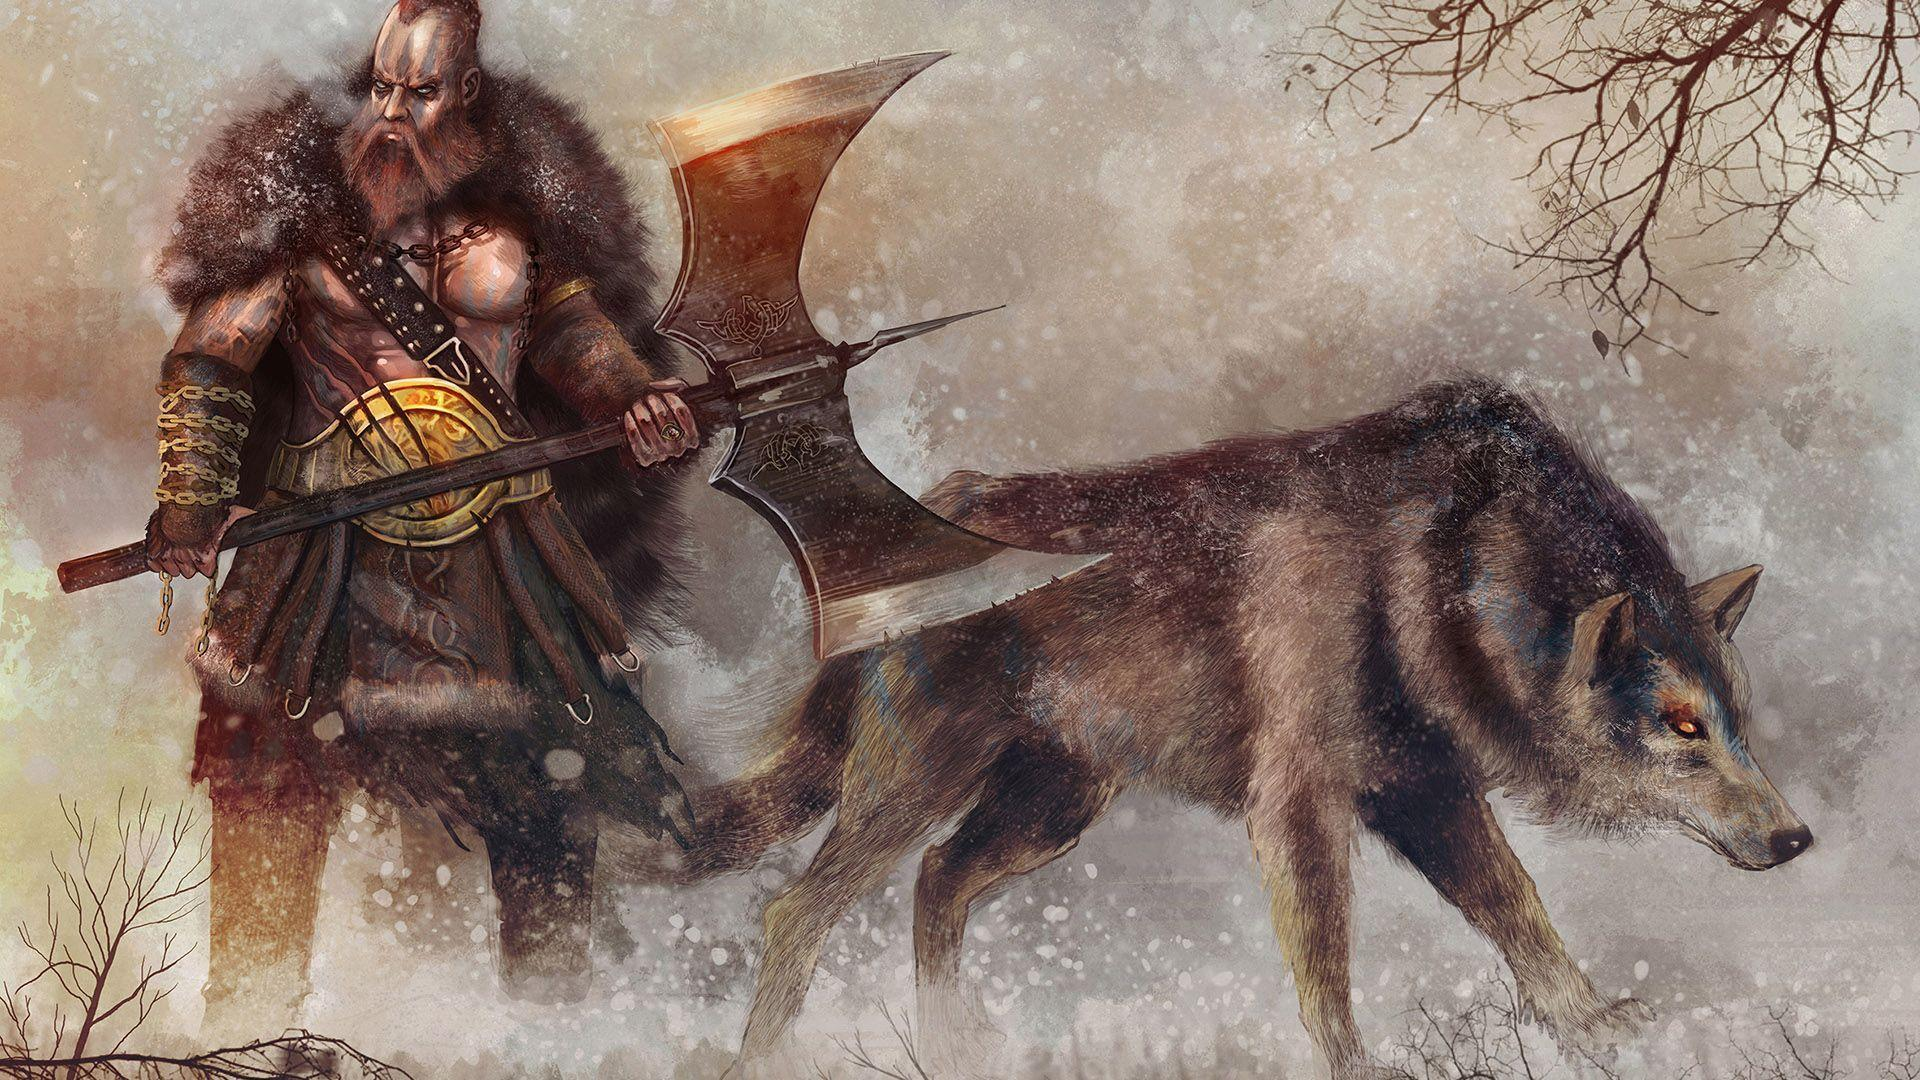 Fire And Water Hd Wallpapers Hd Warrior And His Wolf In The Snow Wallpaper Download